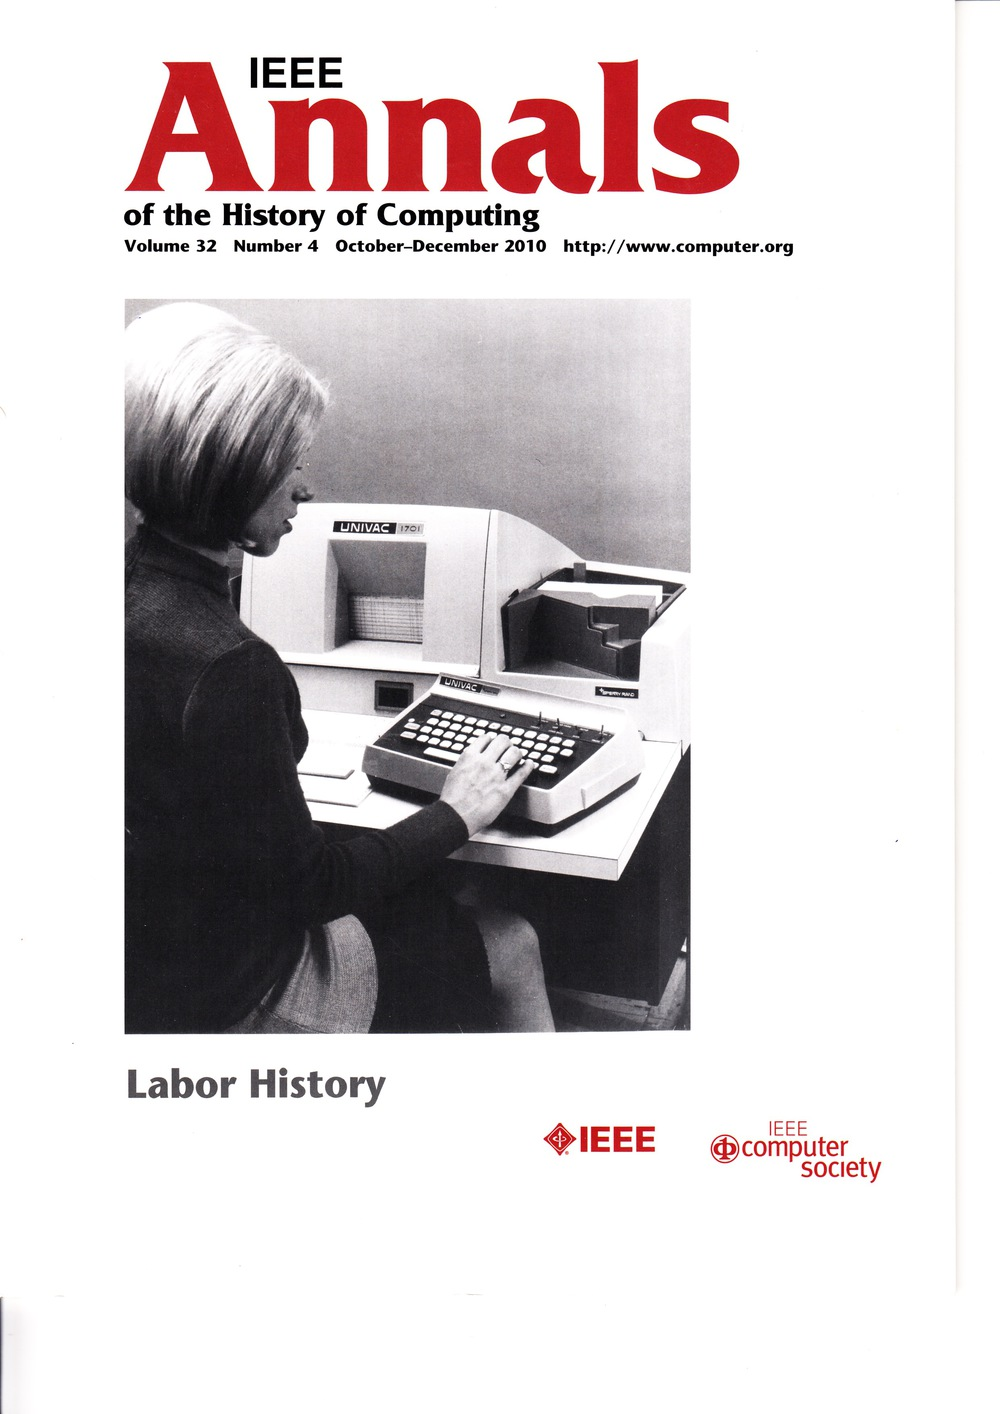 Scan of Document: IEEE Annals of the History of Computing - October-December 2010